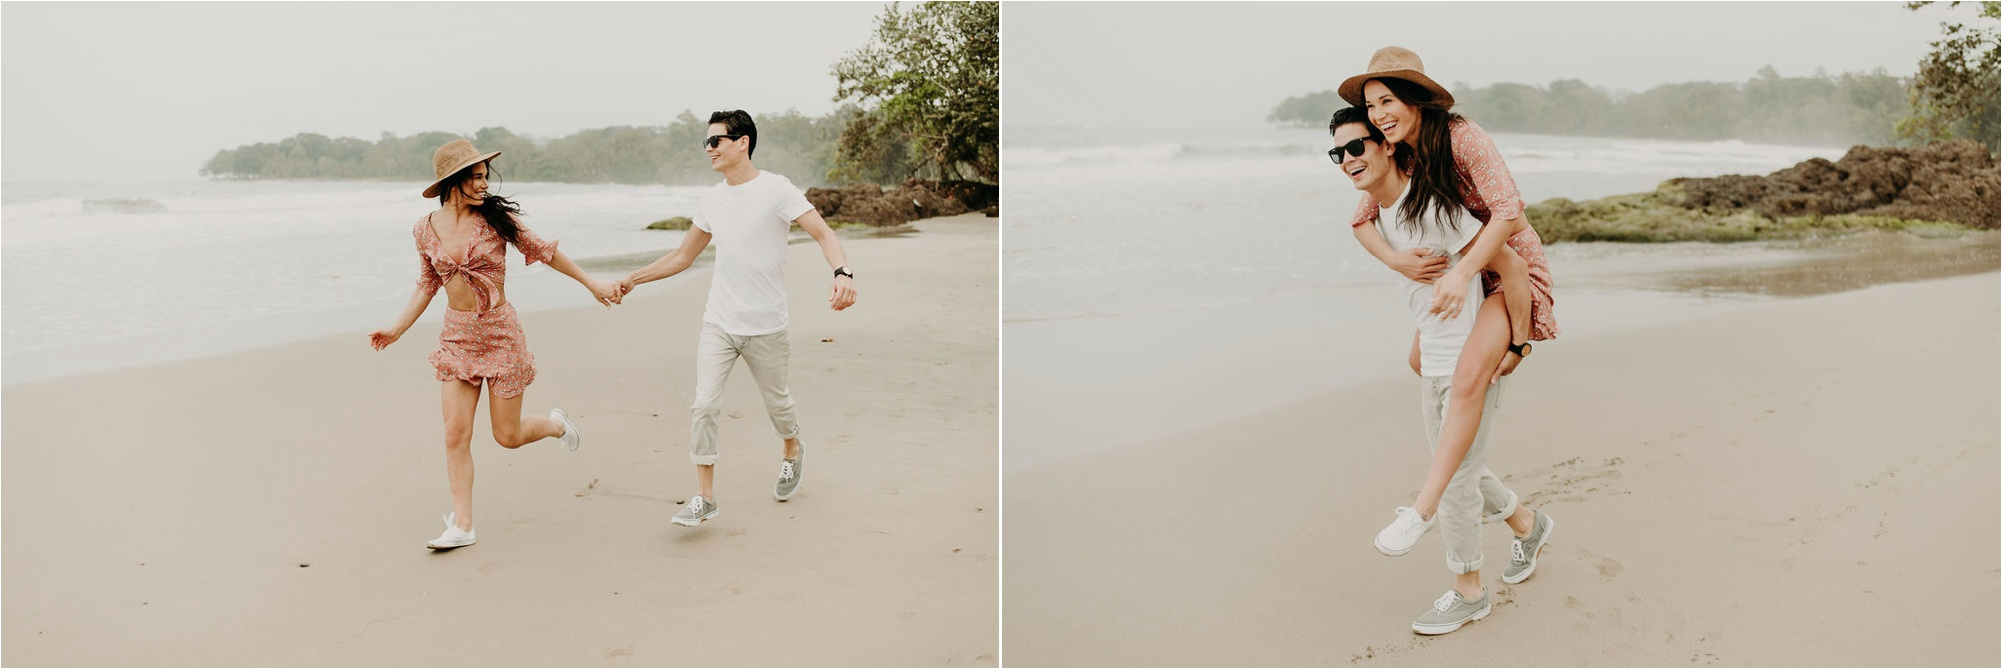 costa rica beach elopement photography